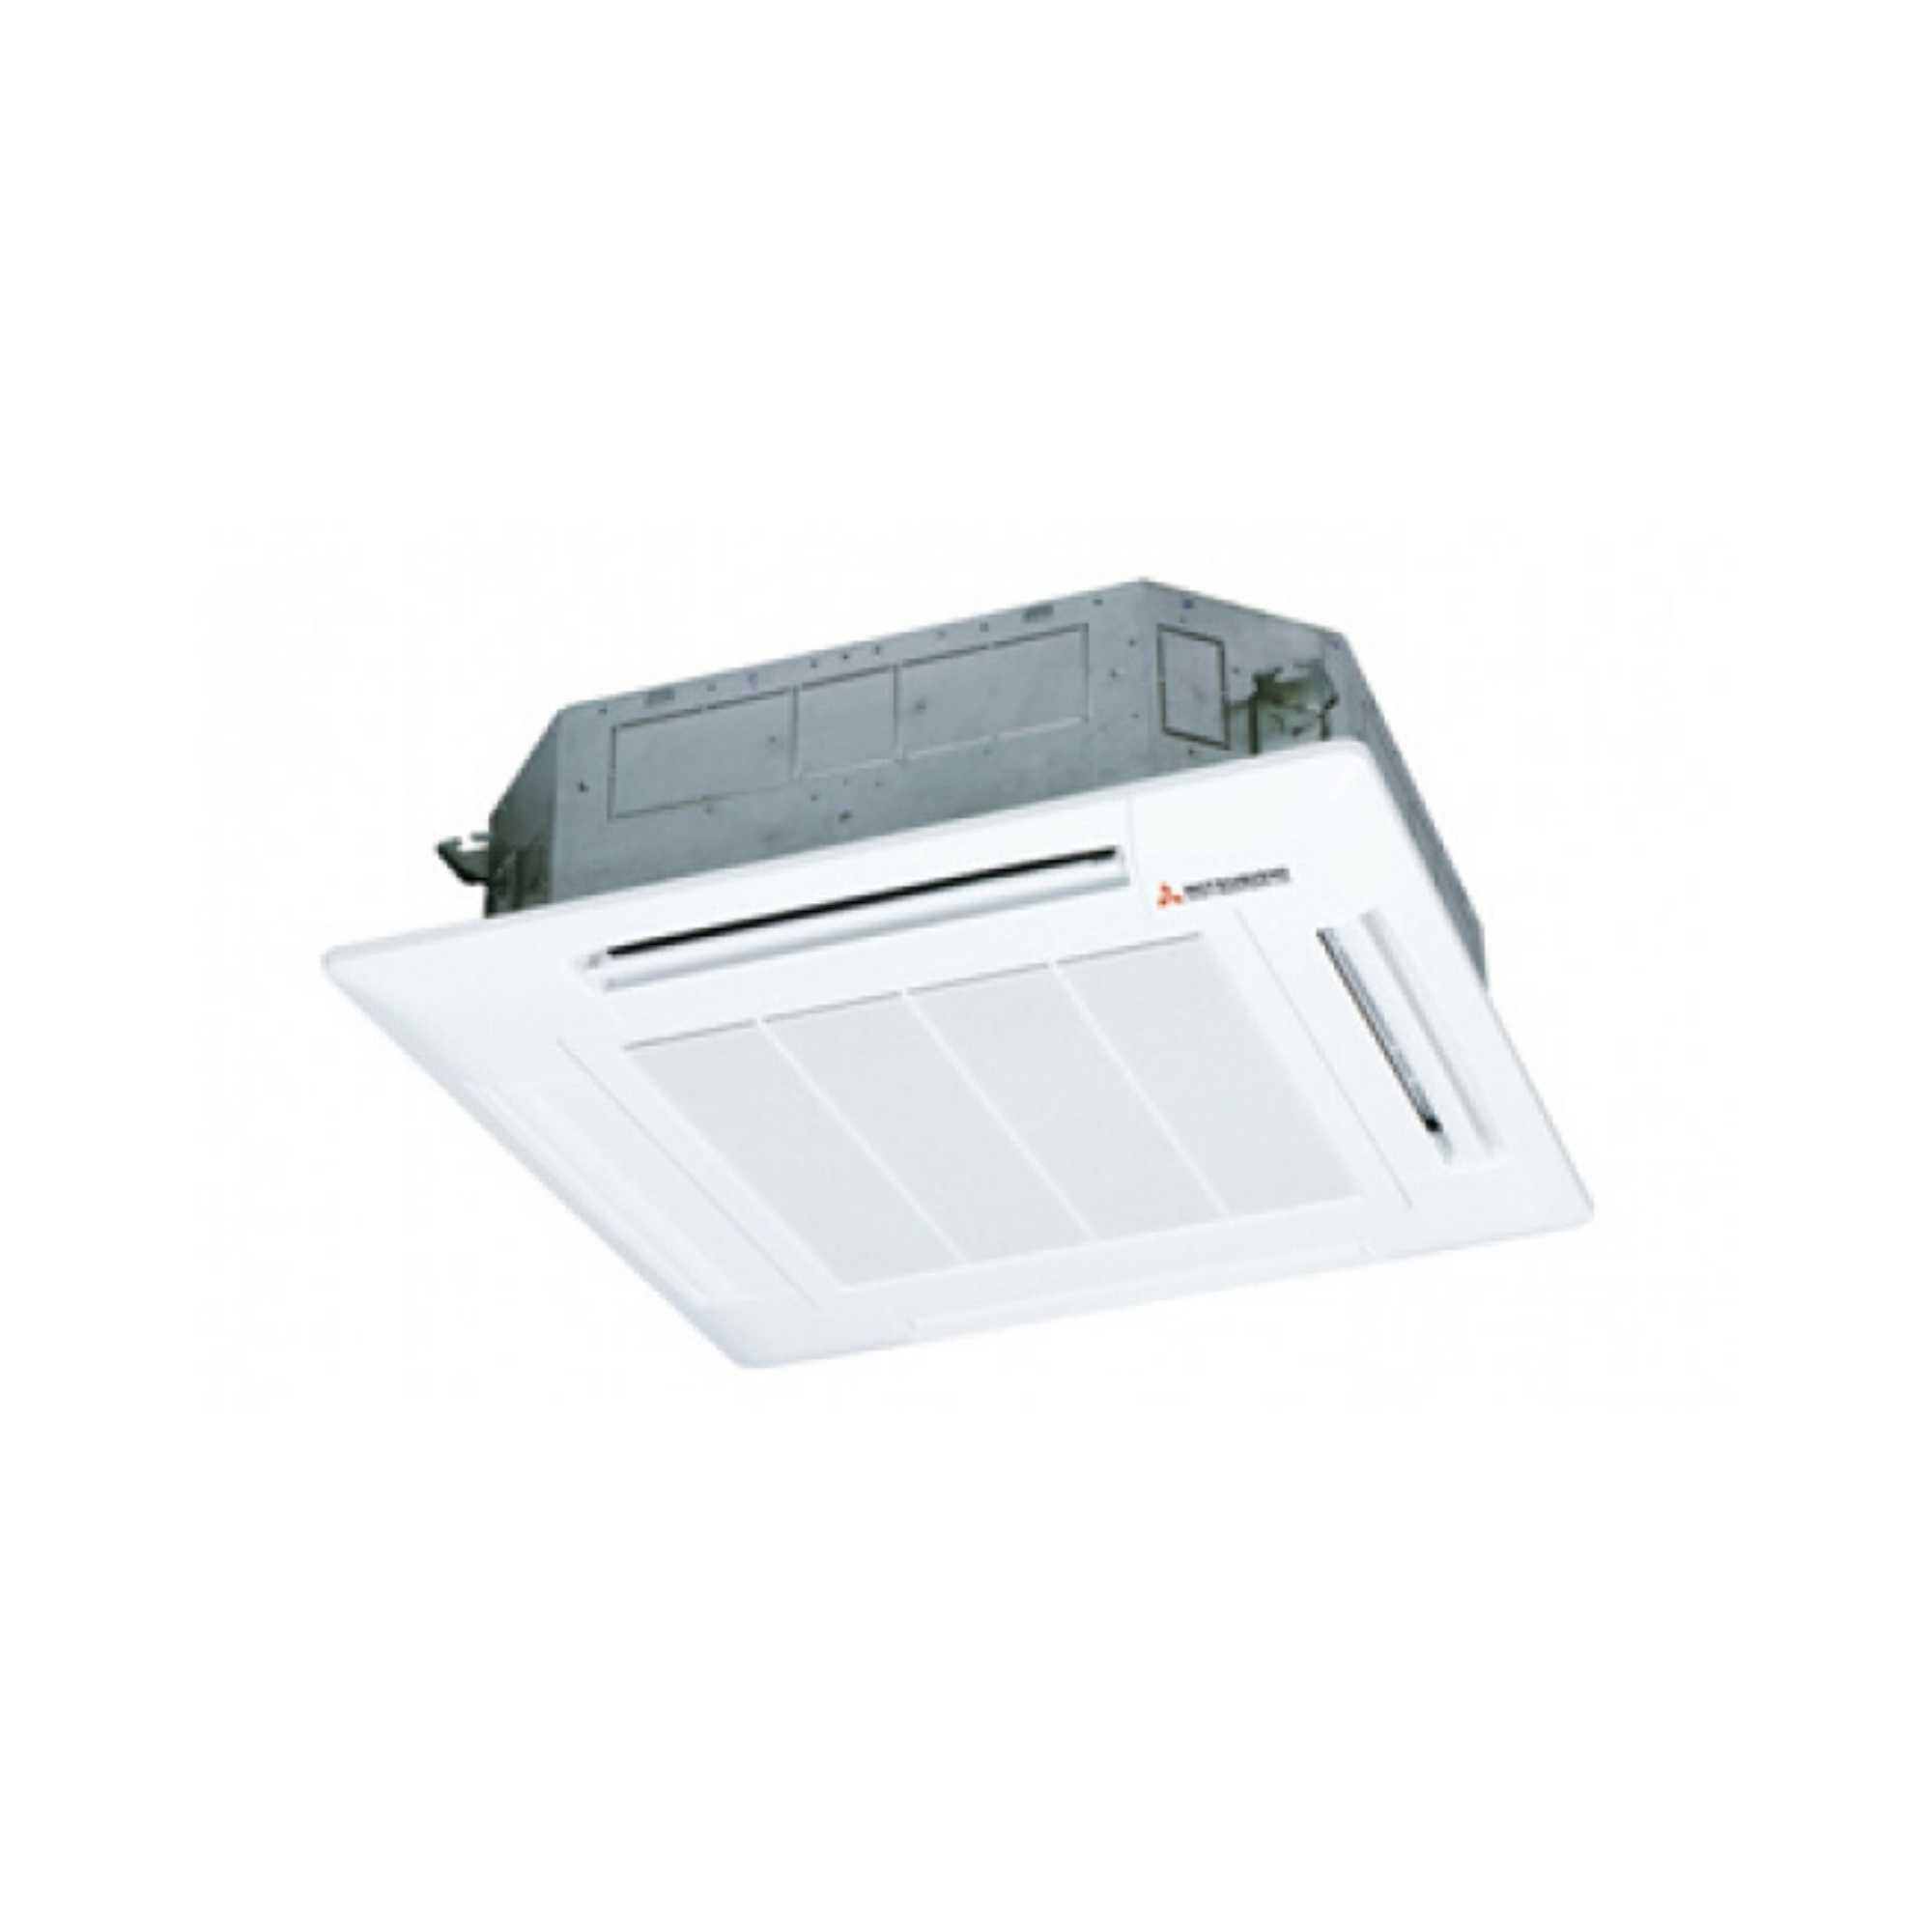 MITSUBISHI CEILING CASSETTE FDT50CR-S 2.0HP